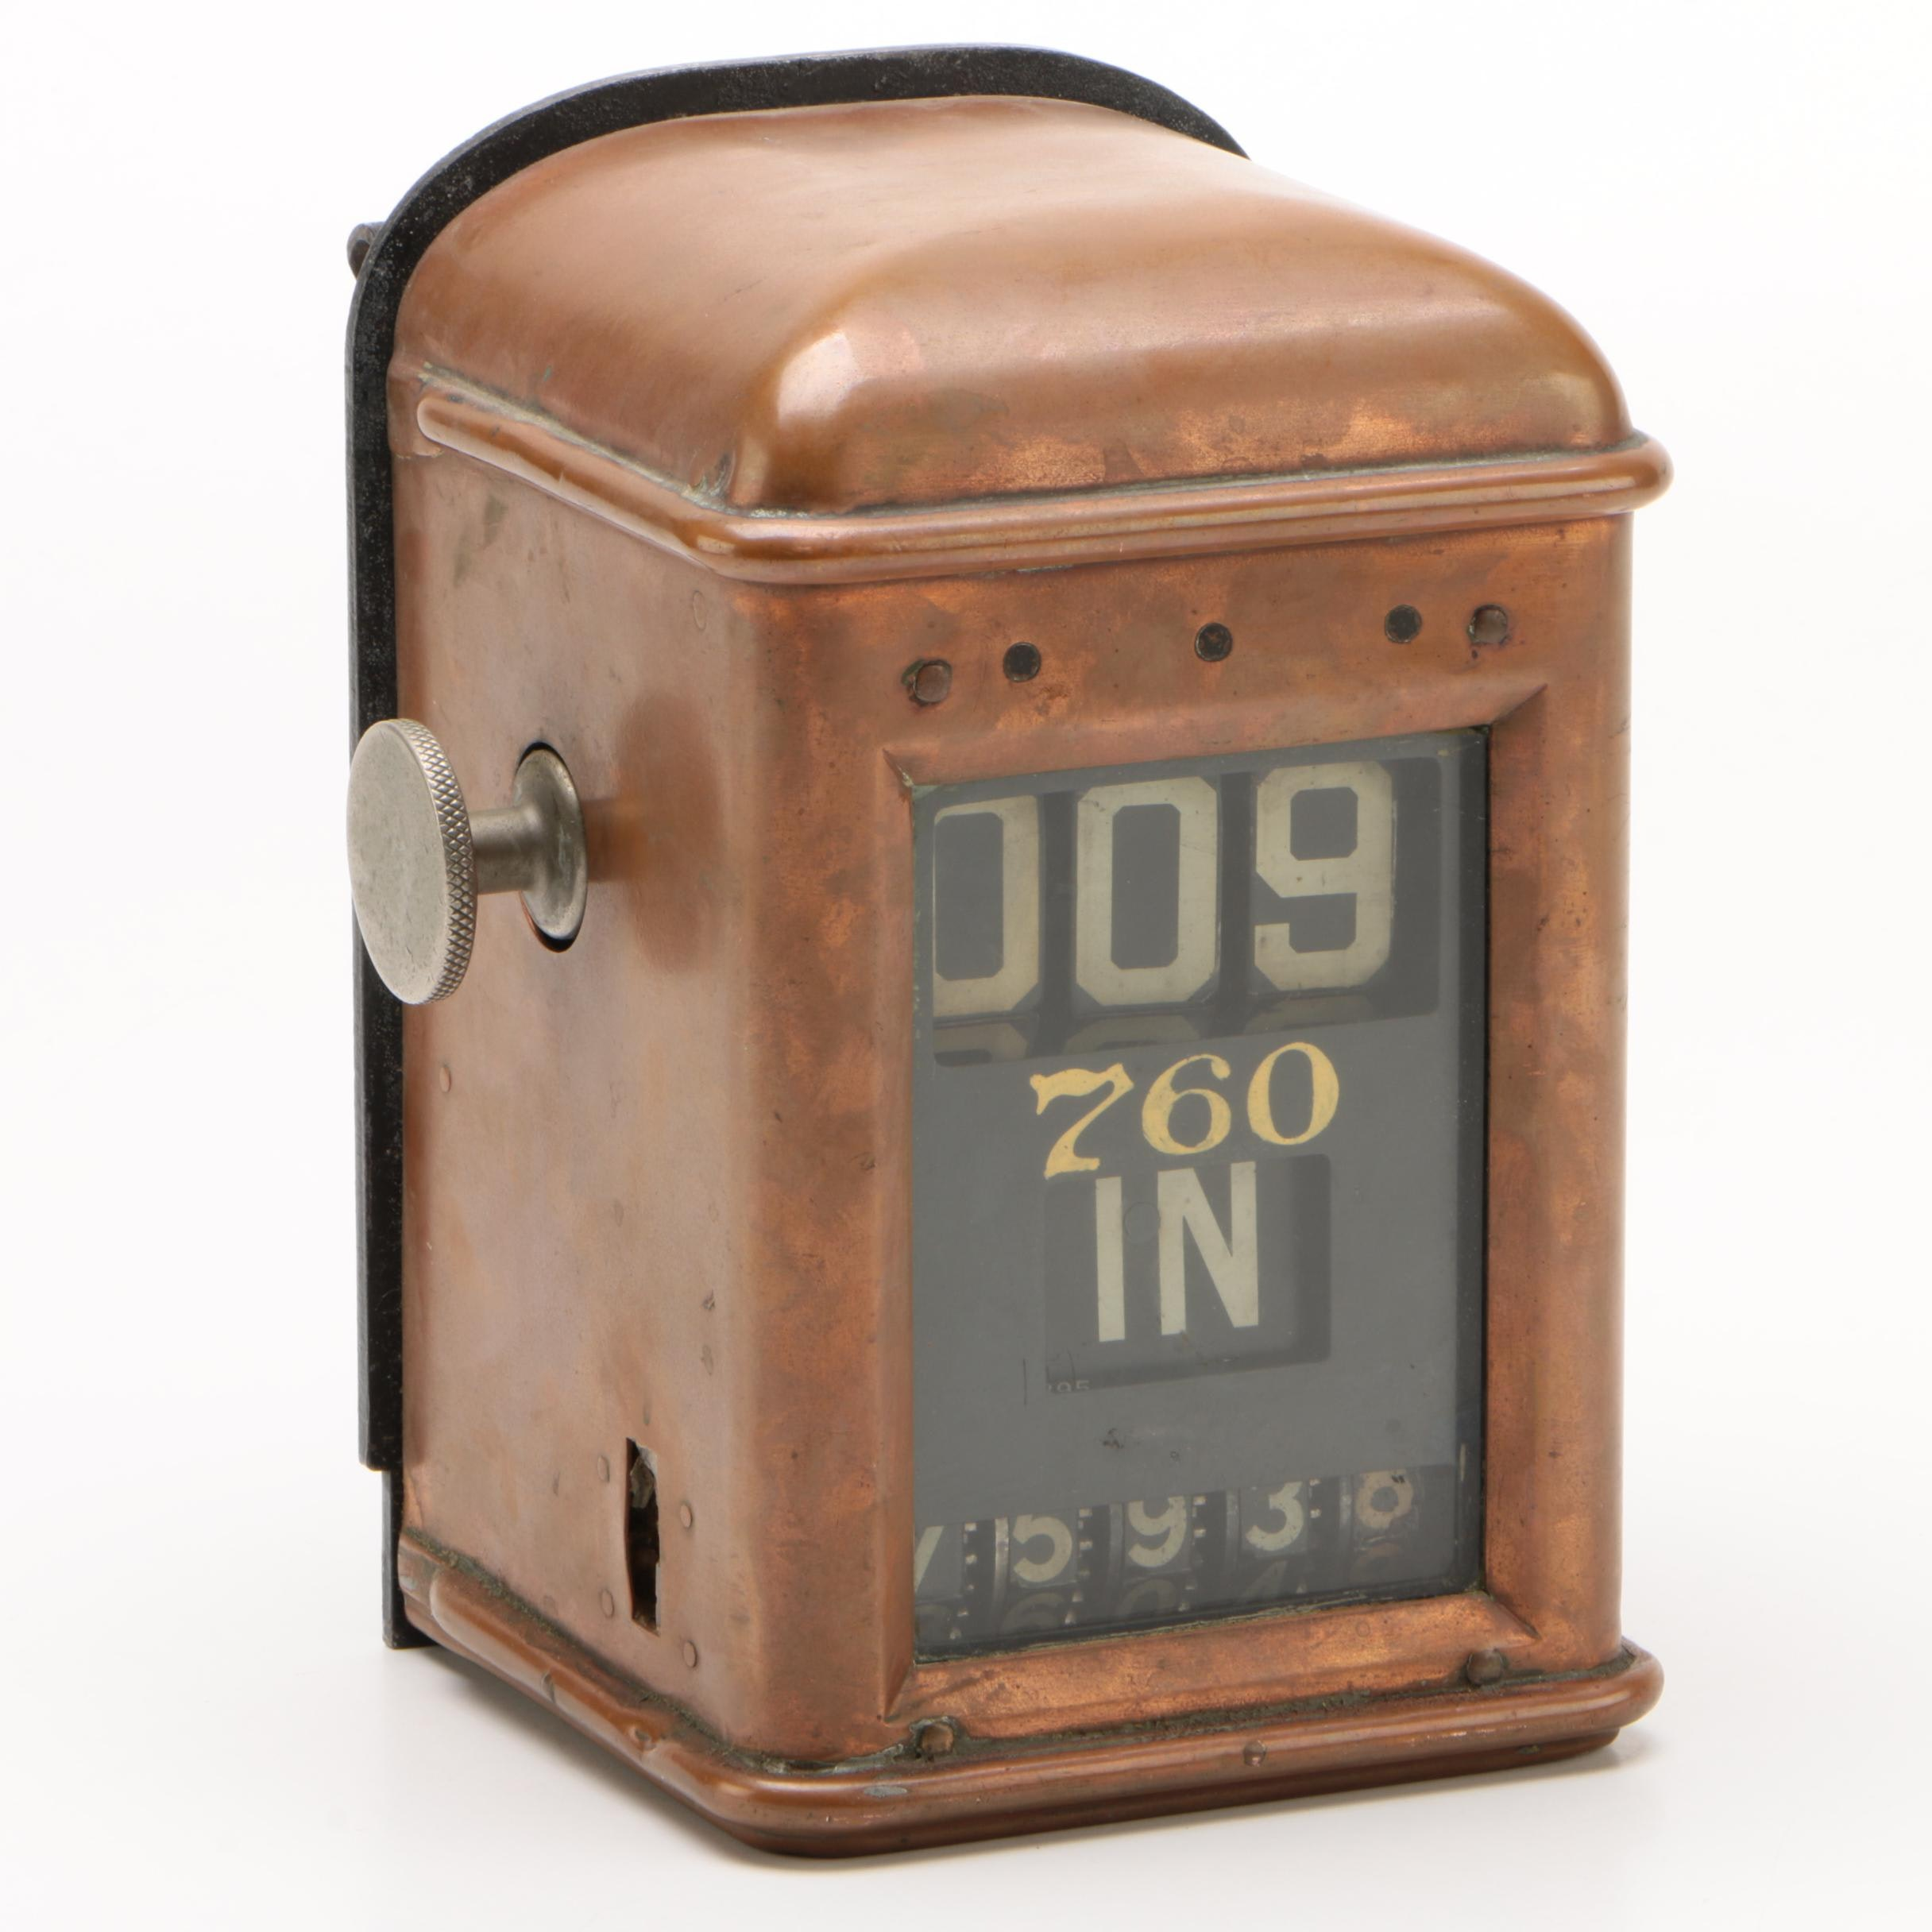 Copper Trolley Fare Meter Box, Early 20th Century